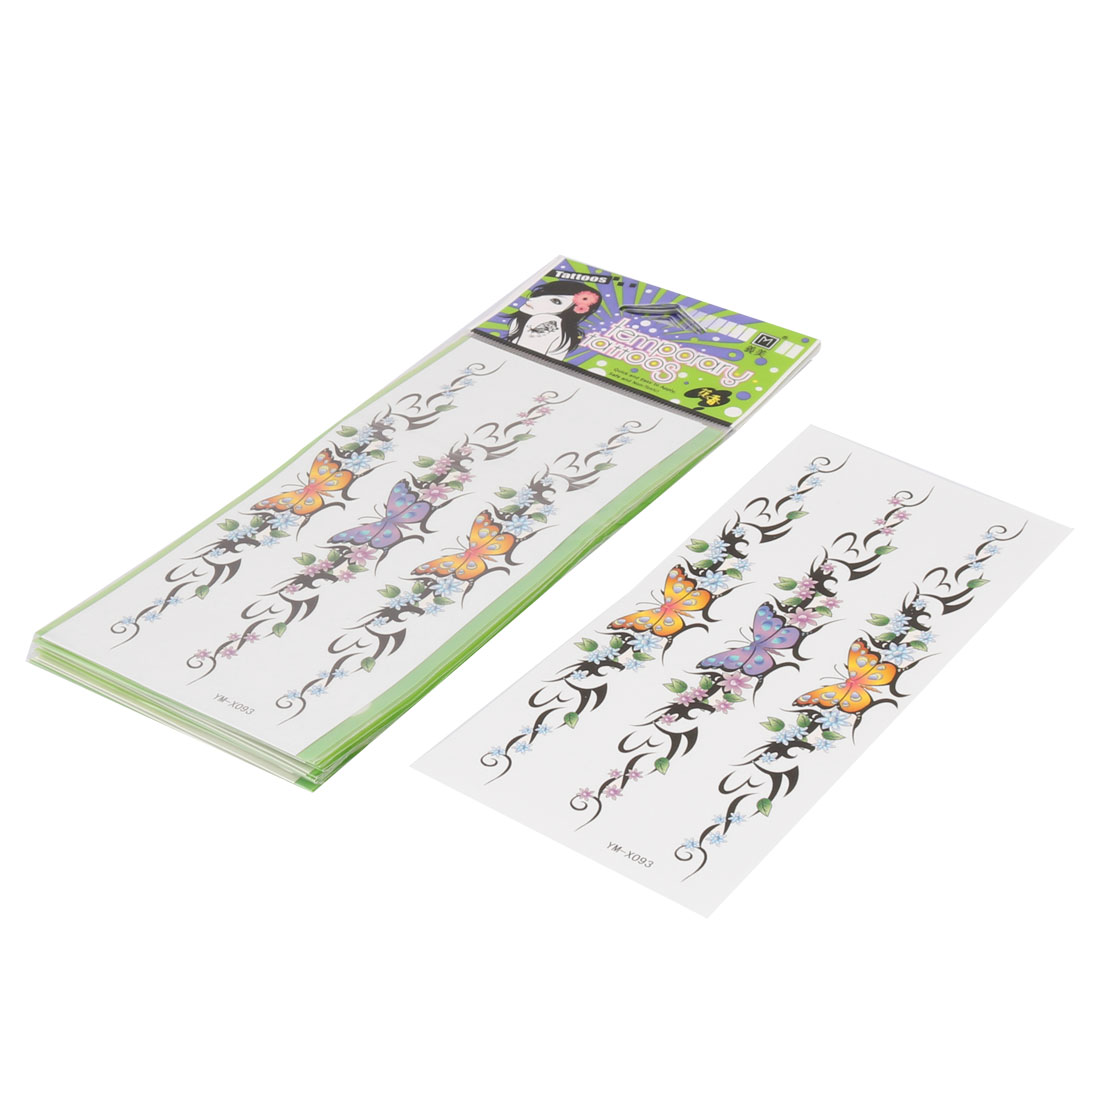 Ink Flowers Butterfly Pattern Transfer Temporary Tattoo Sticker Colorful 10 Pcs